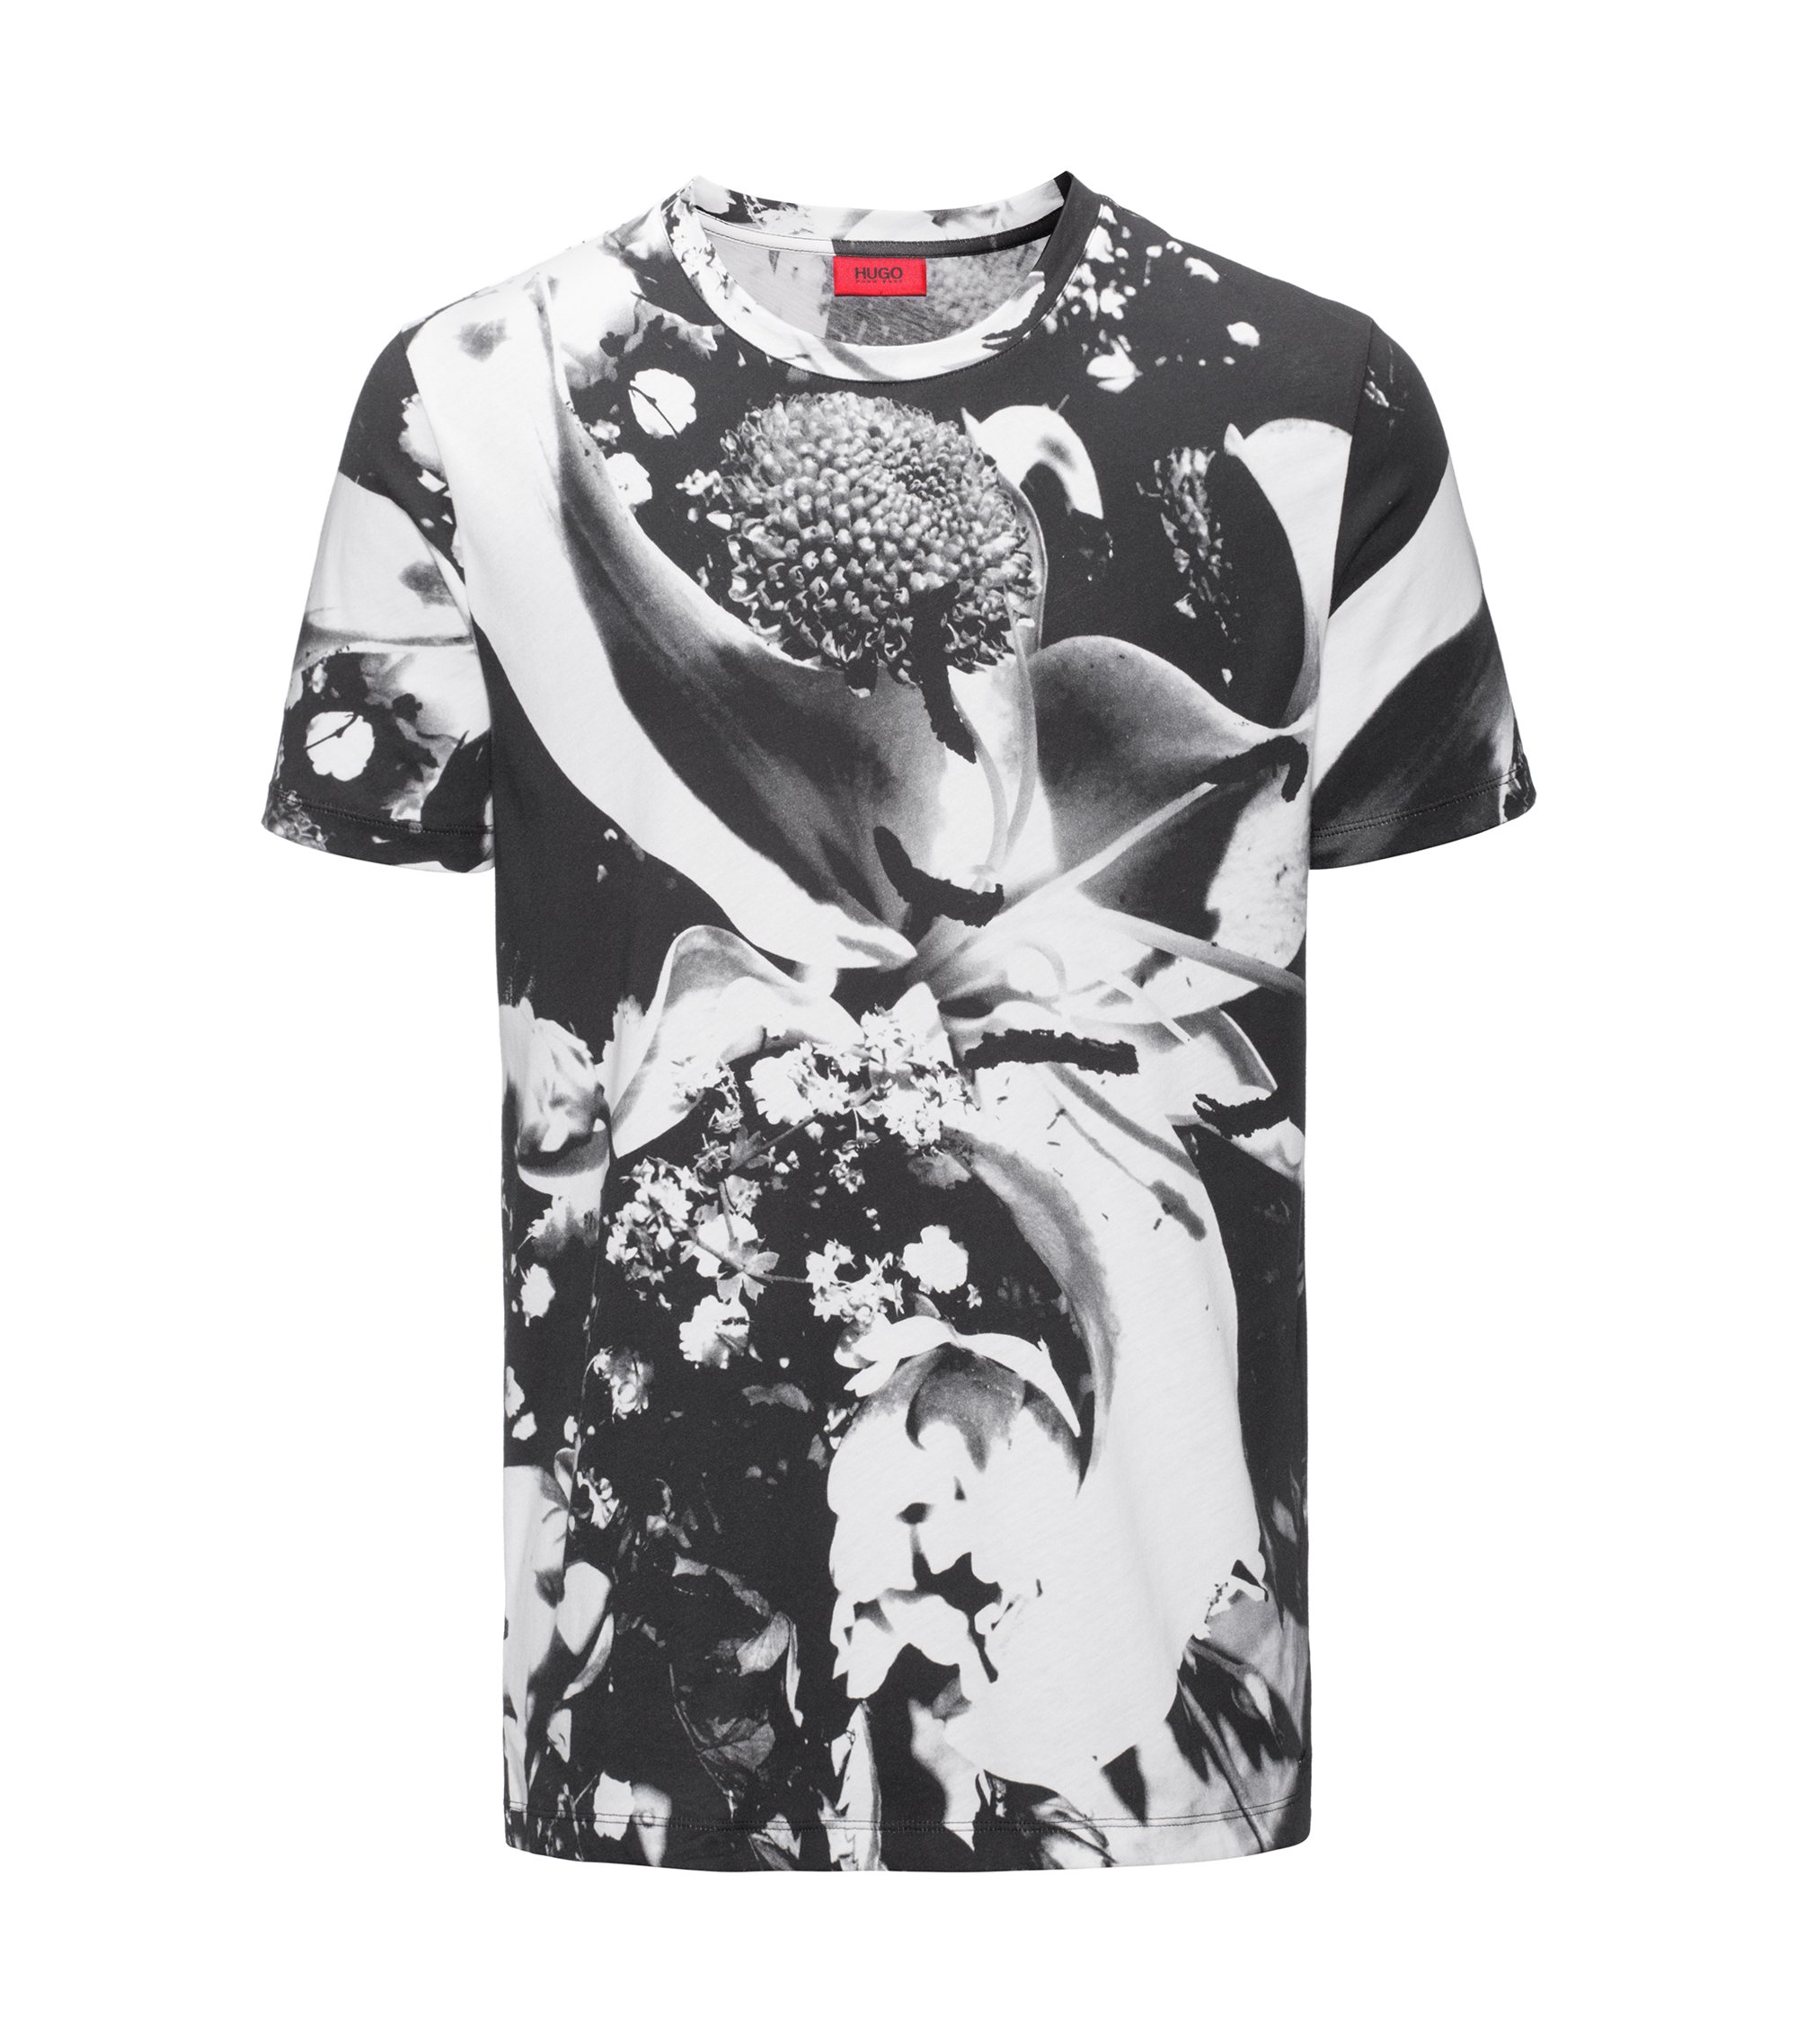 Floral Digital-Print Cotton T-Shirt | Diced, White